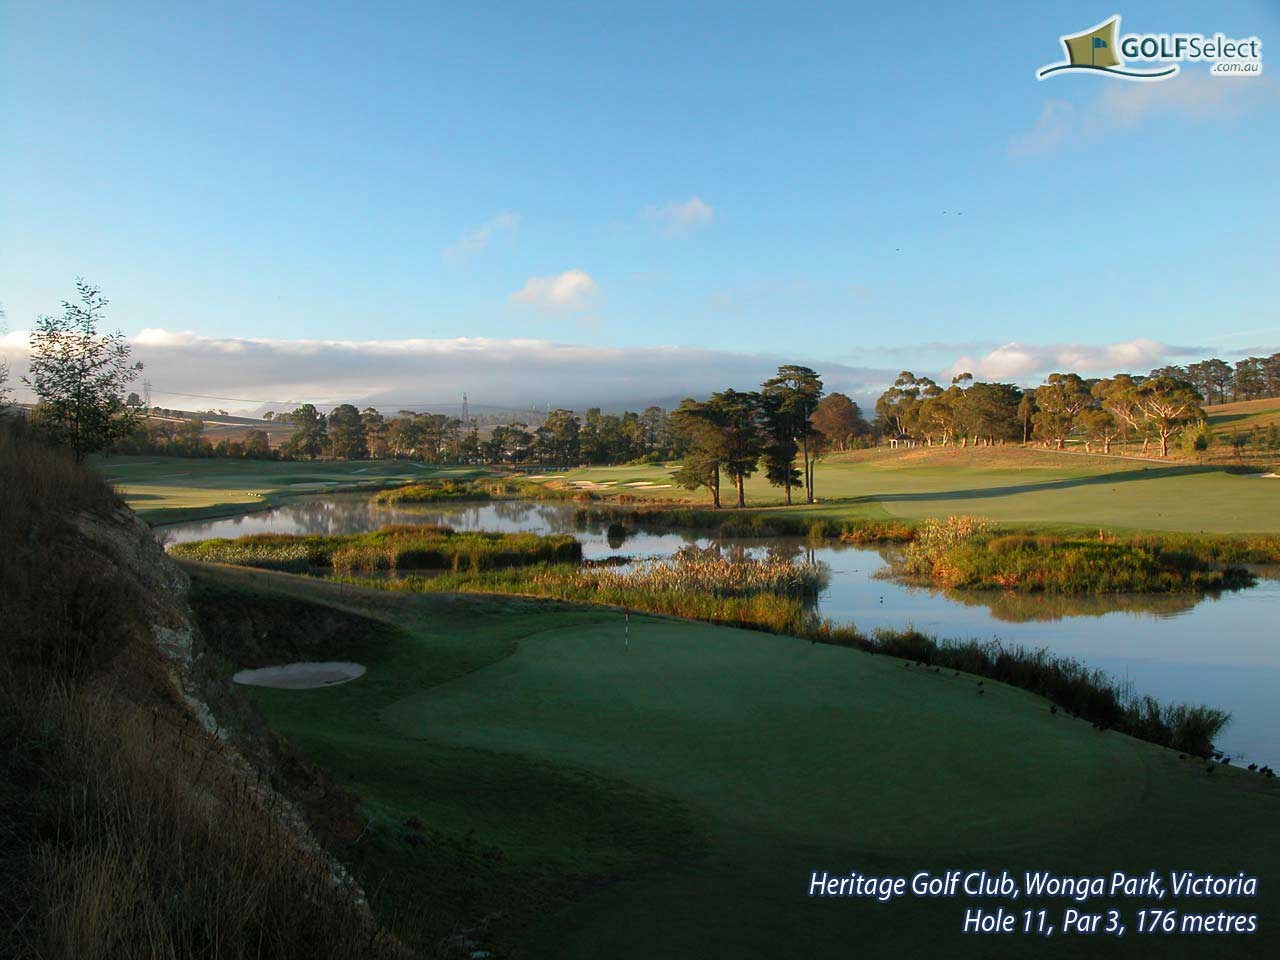 The Heritage Golf and Country Club (St.John Course) Hole 11, Par 3, 176 metres